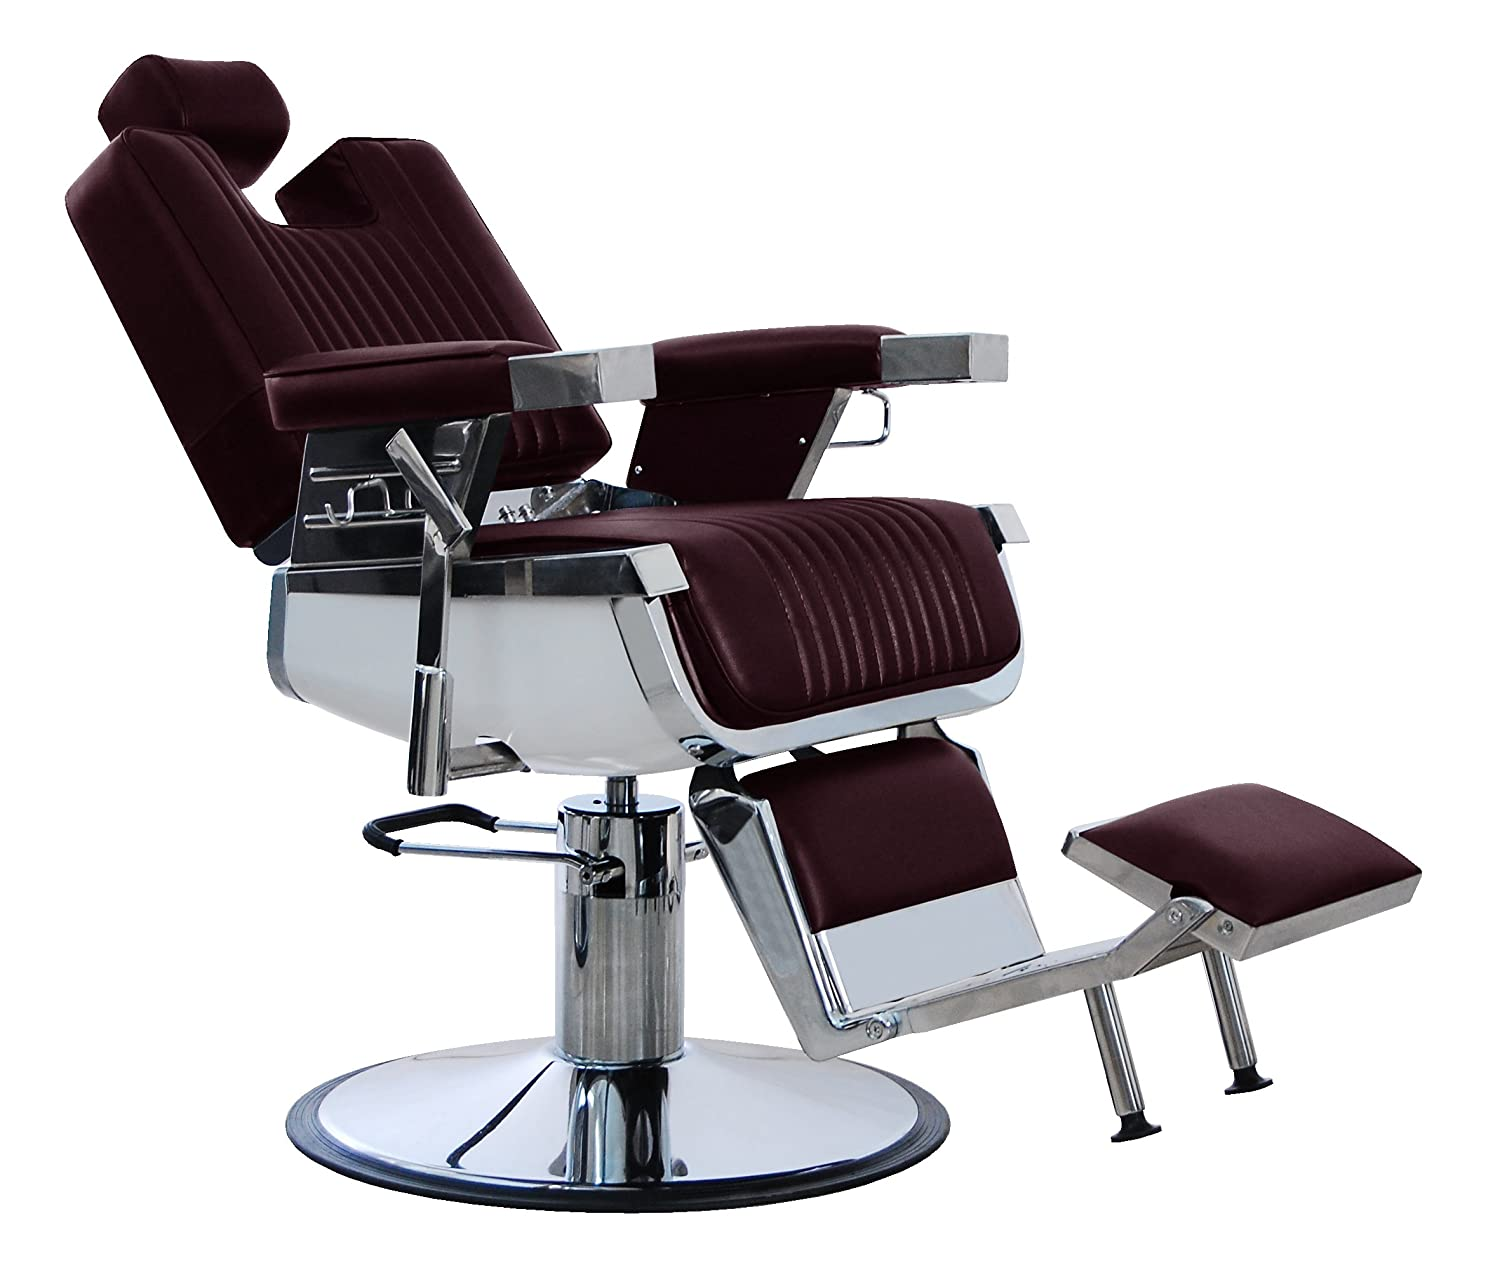 New resistente marrone vera pelle Hadi® Barber Chair bc-20, Par fine CHINA